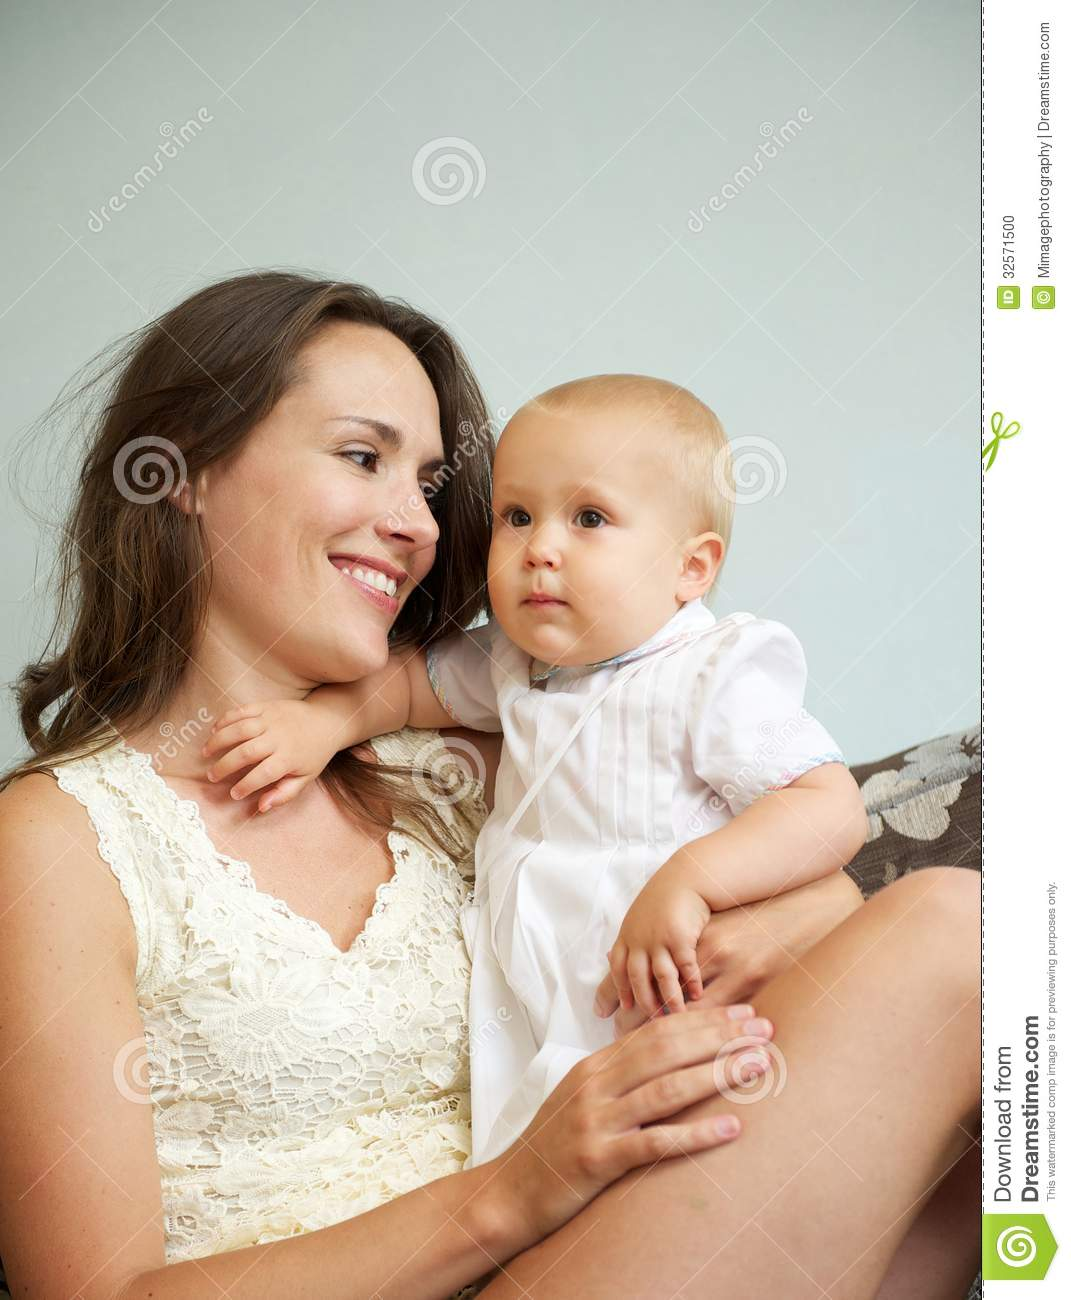 Happy Woman Holding Cute Baby Indoors Stock Photo - Image ...